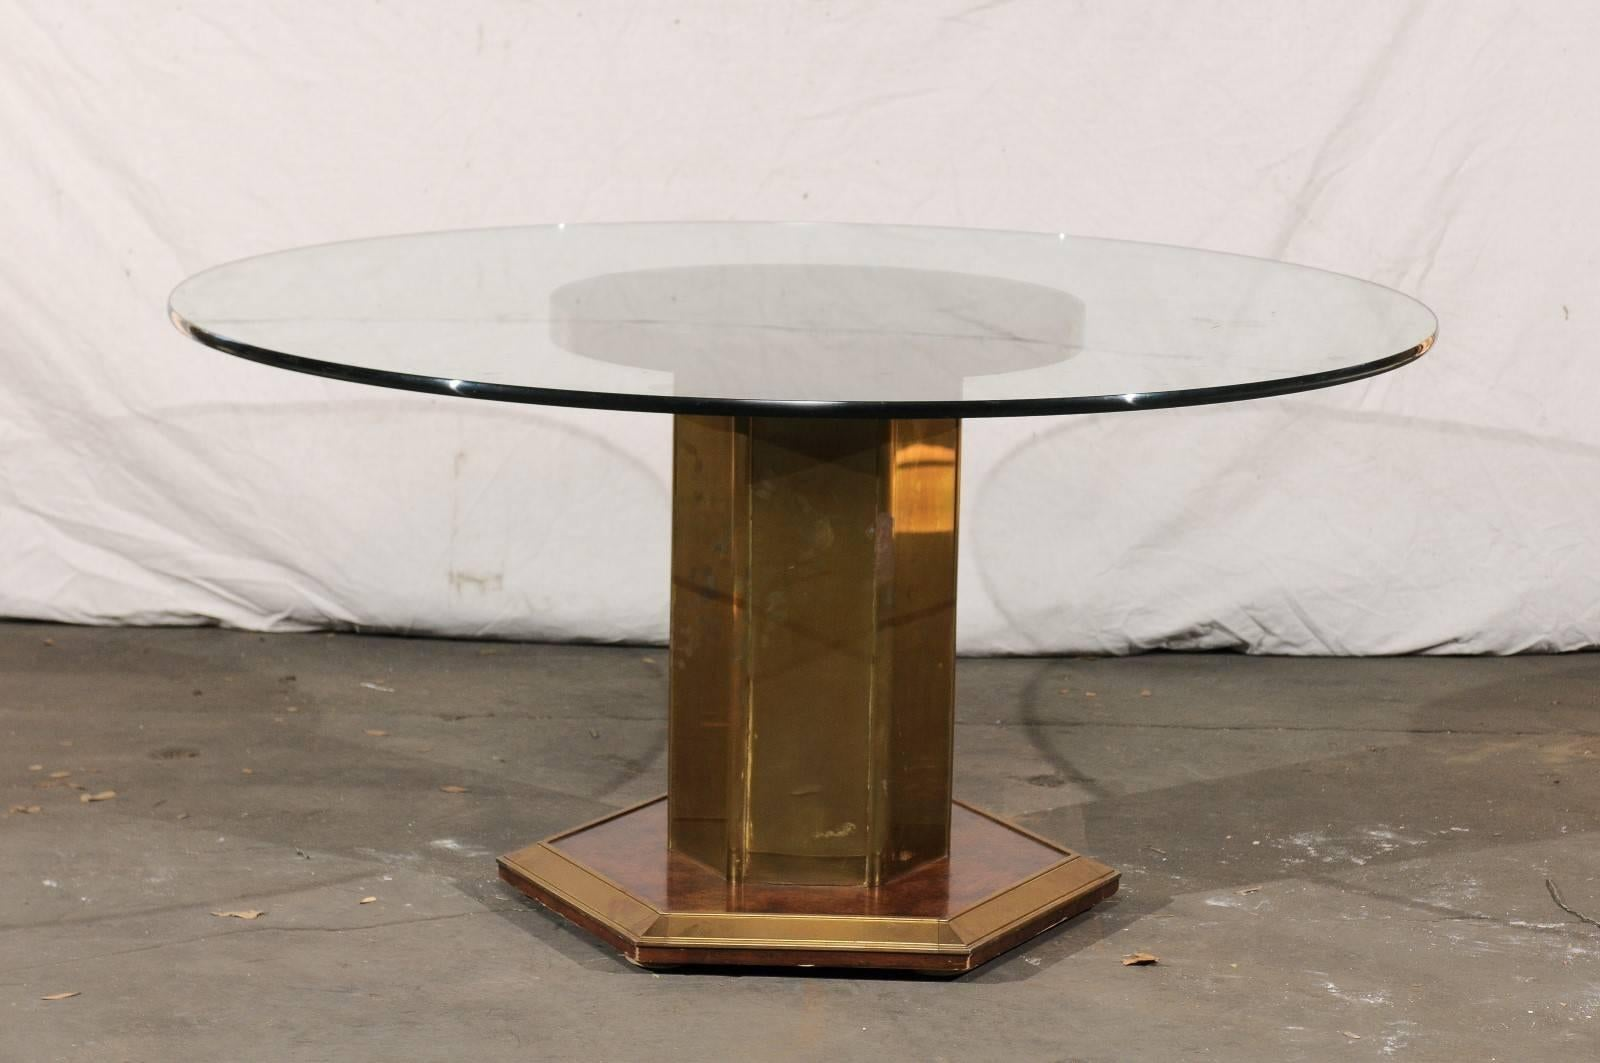 Mid 20th Century Circa 1970s American Brass And Burled Wood Pedestal Round  Glass Dining Table